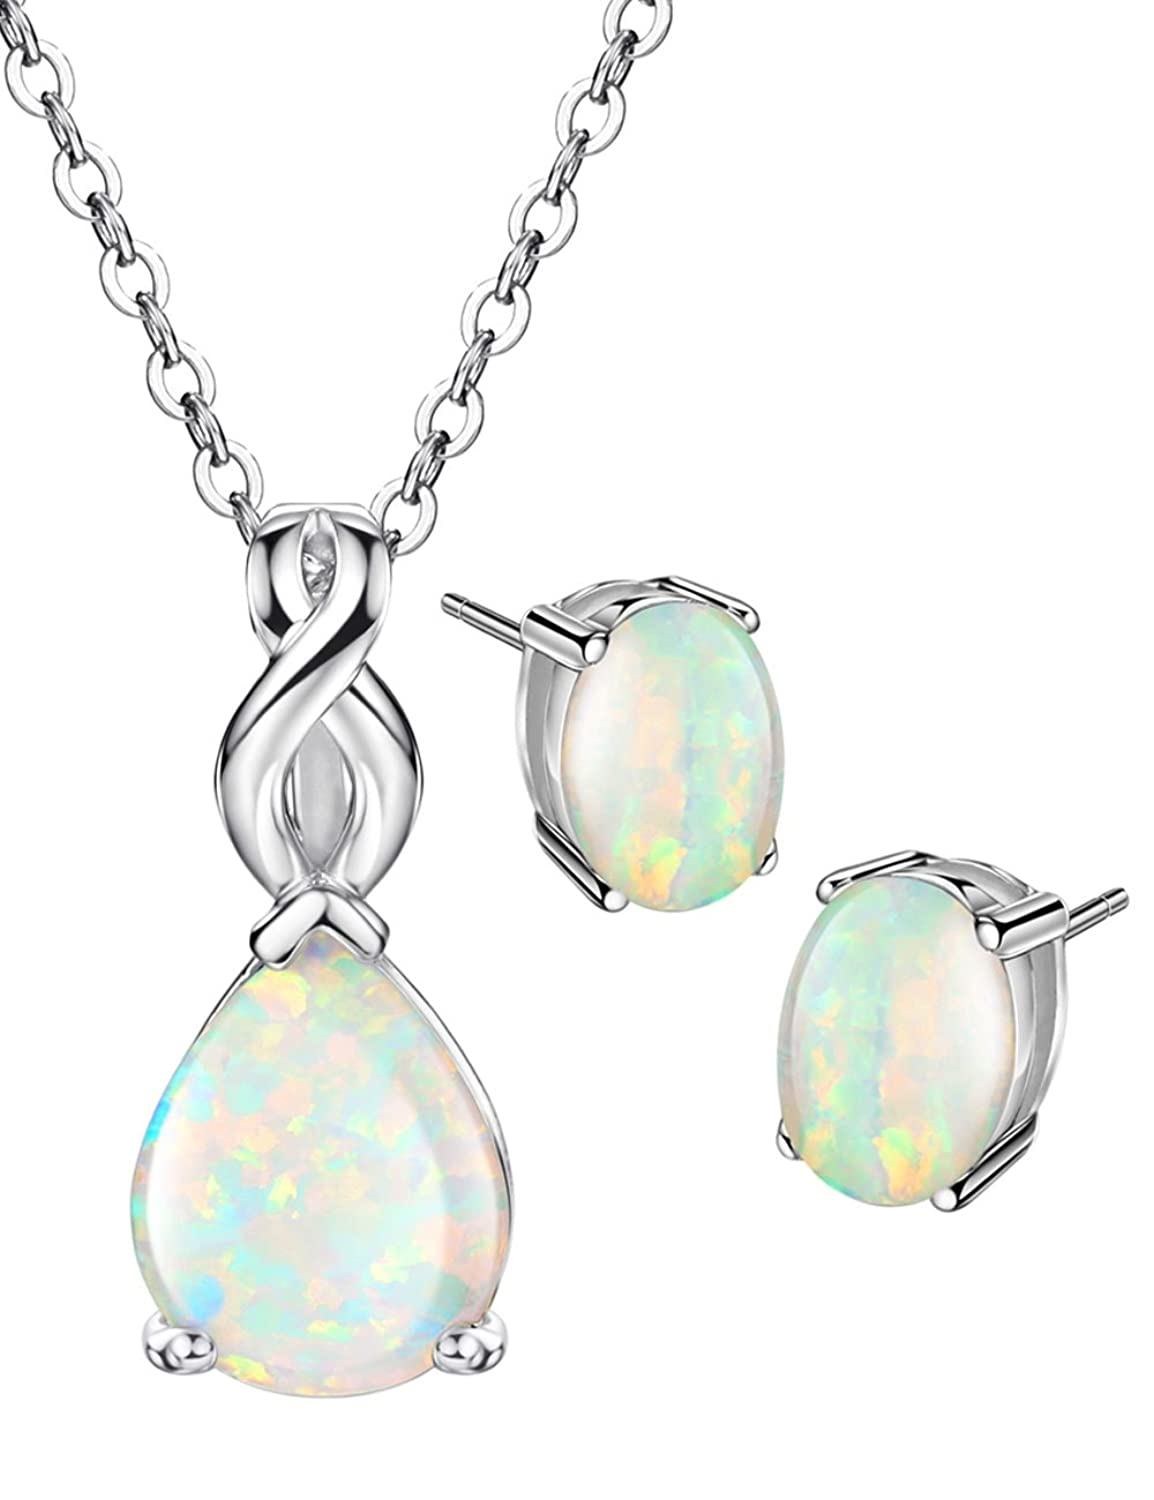 Opal Jewelry Set Sterling Silver Pendant Necklace Stud Earrings October Birthstone Gemstone Fine Jewelry for Women